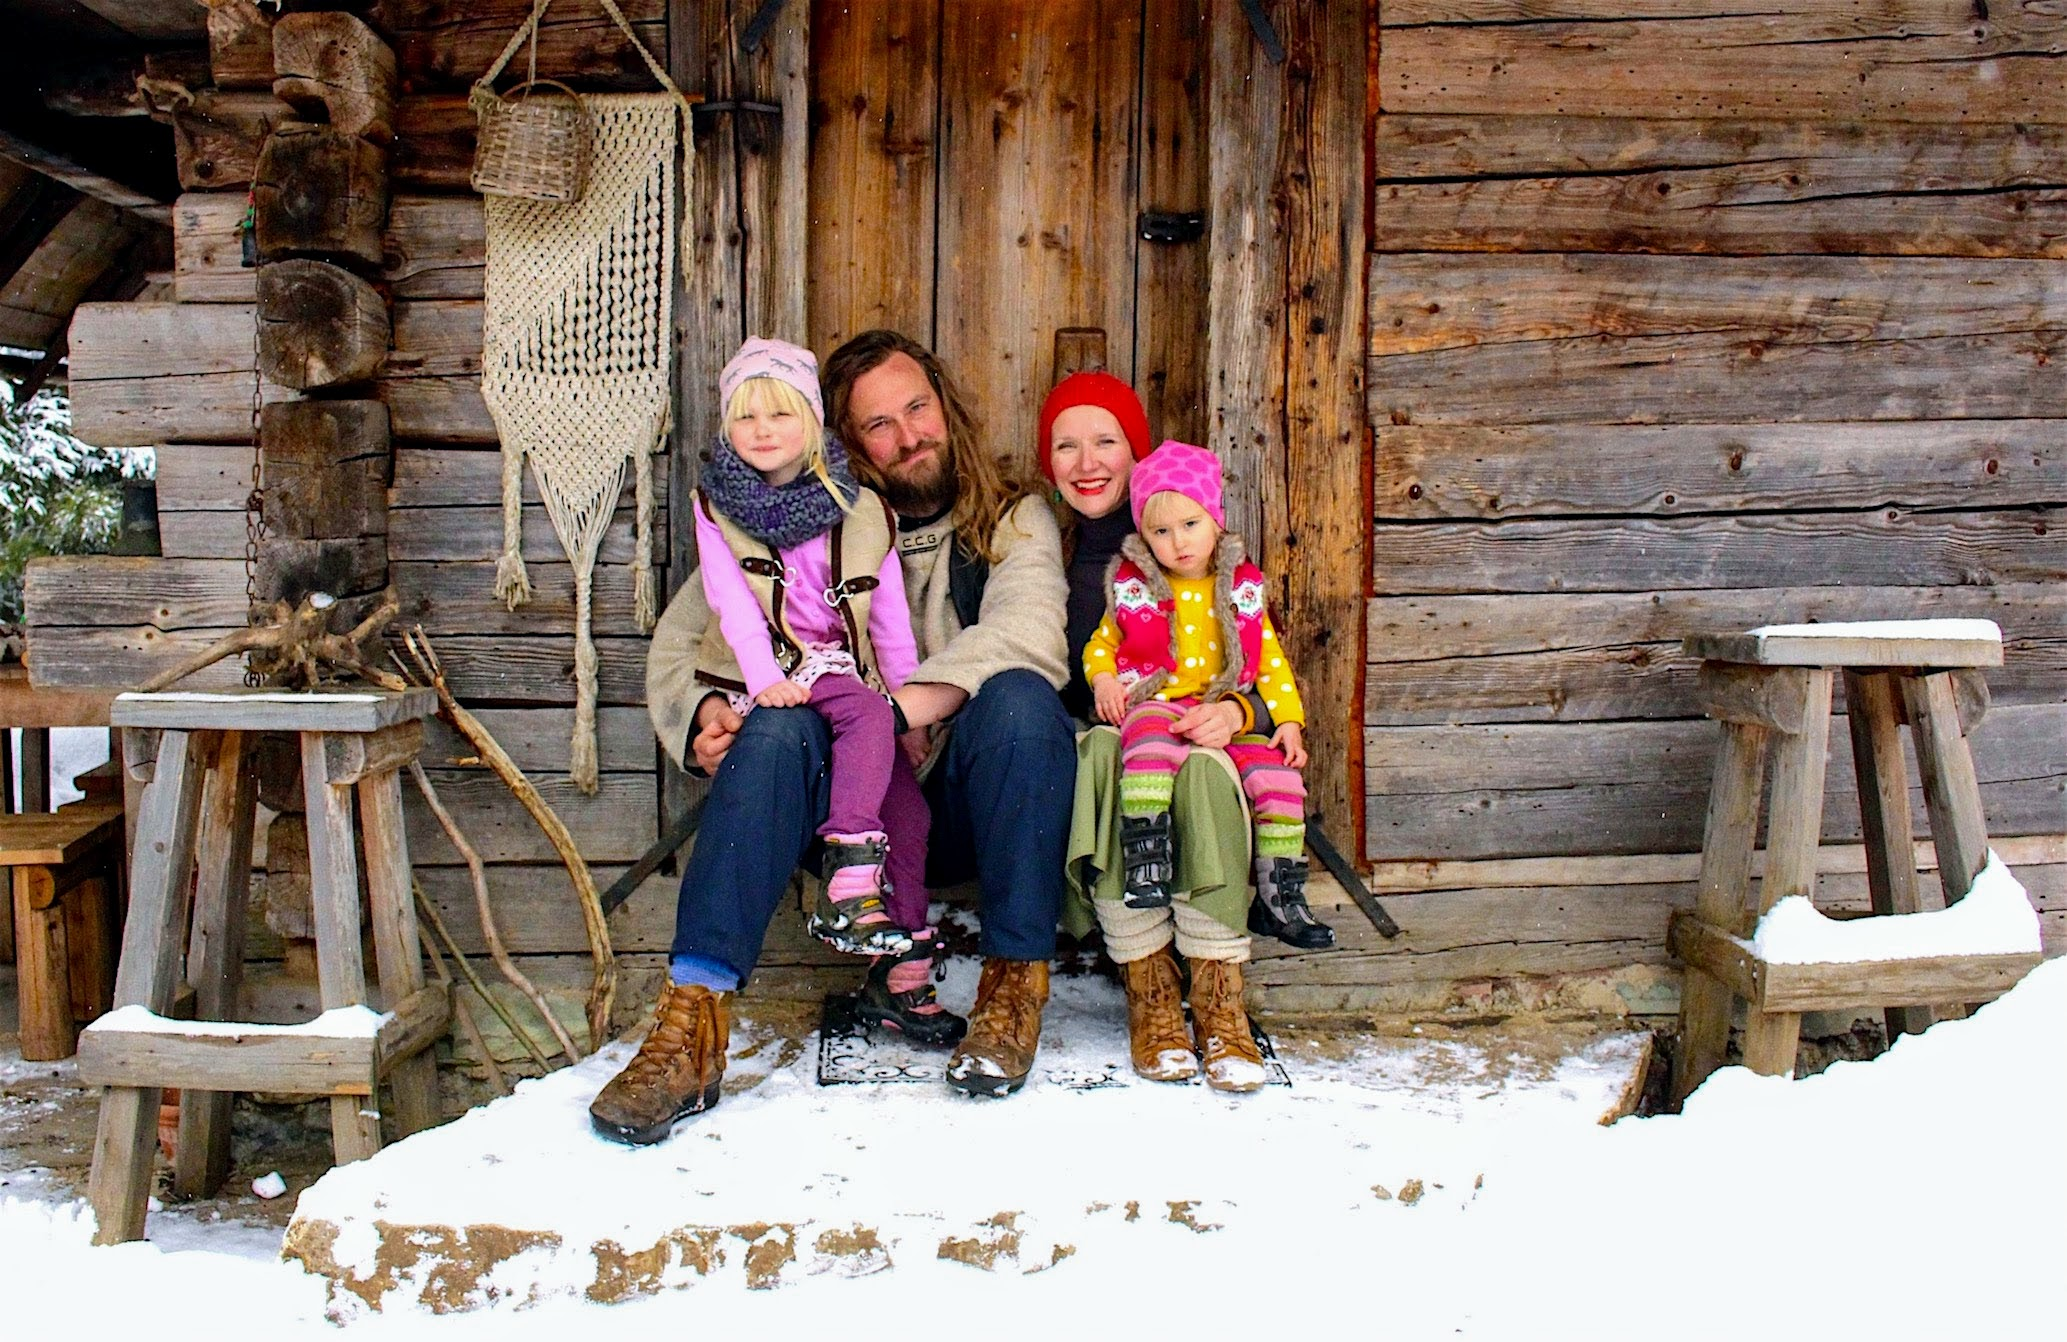 Family Šahinpašić at Vukov Konak, Bosnian Mountain Lodge